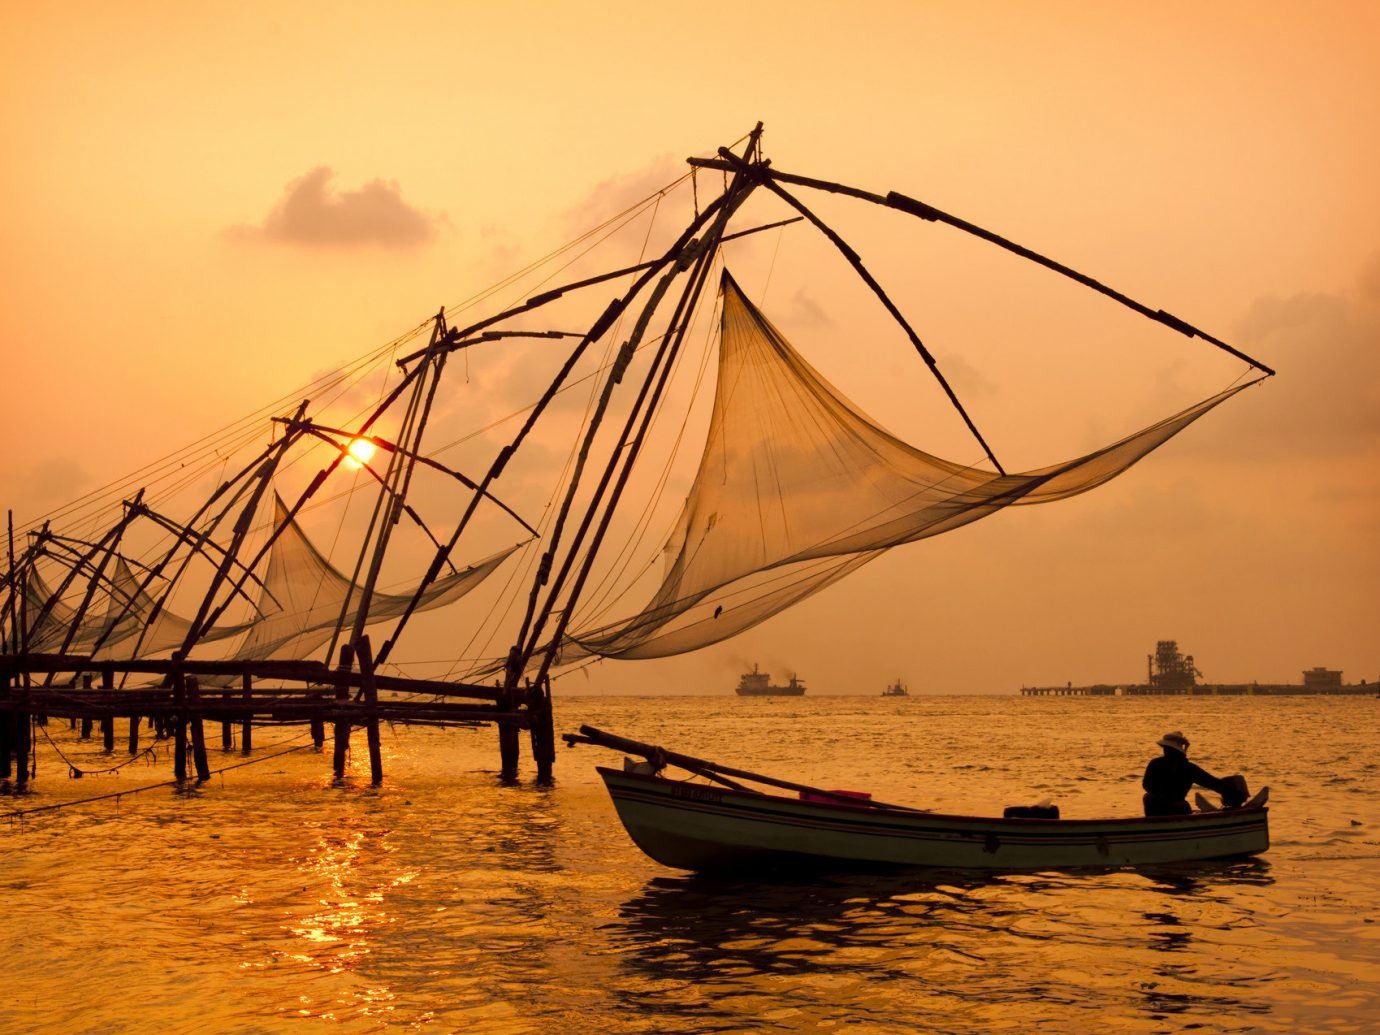 Budget Trip Ideas sky water outdoor Boat Sea Sunset evening morning vehicle dusk Ocean sunrise boating reflection wind barque day